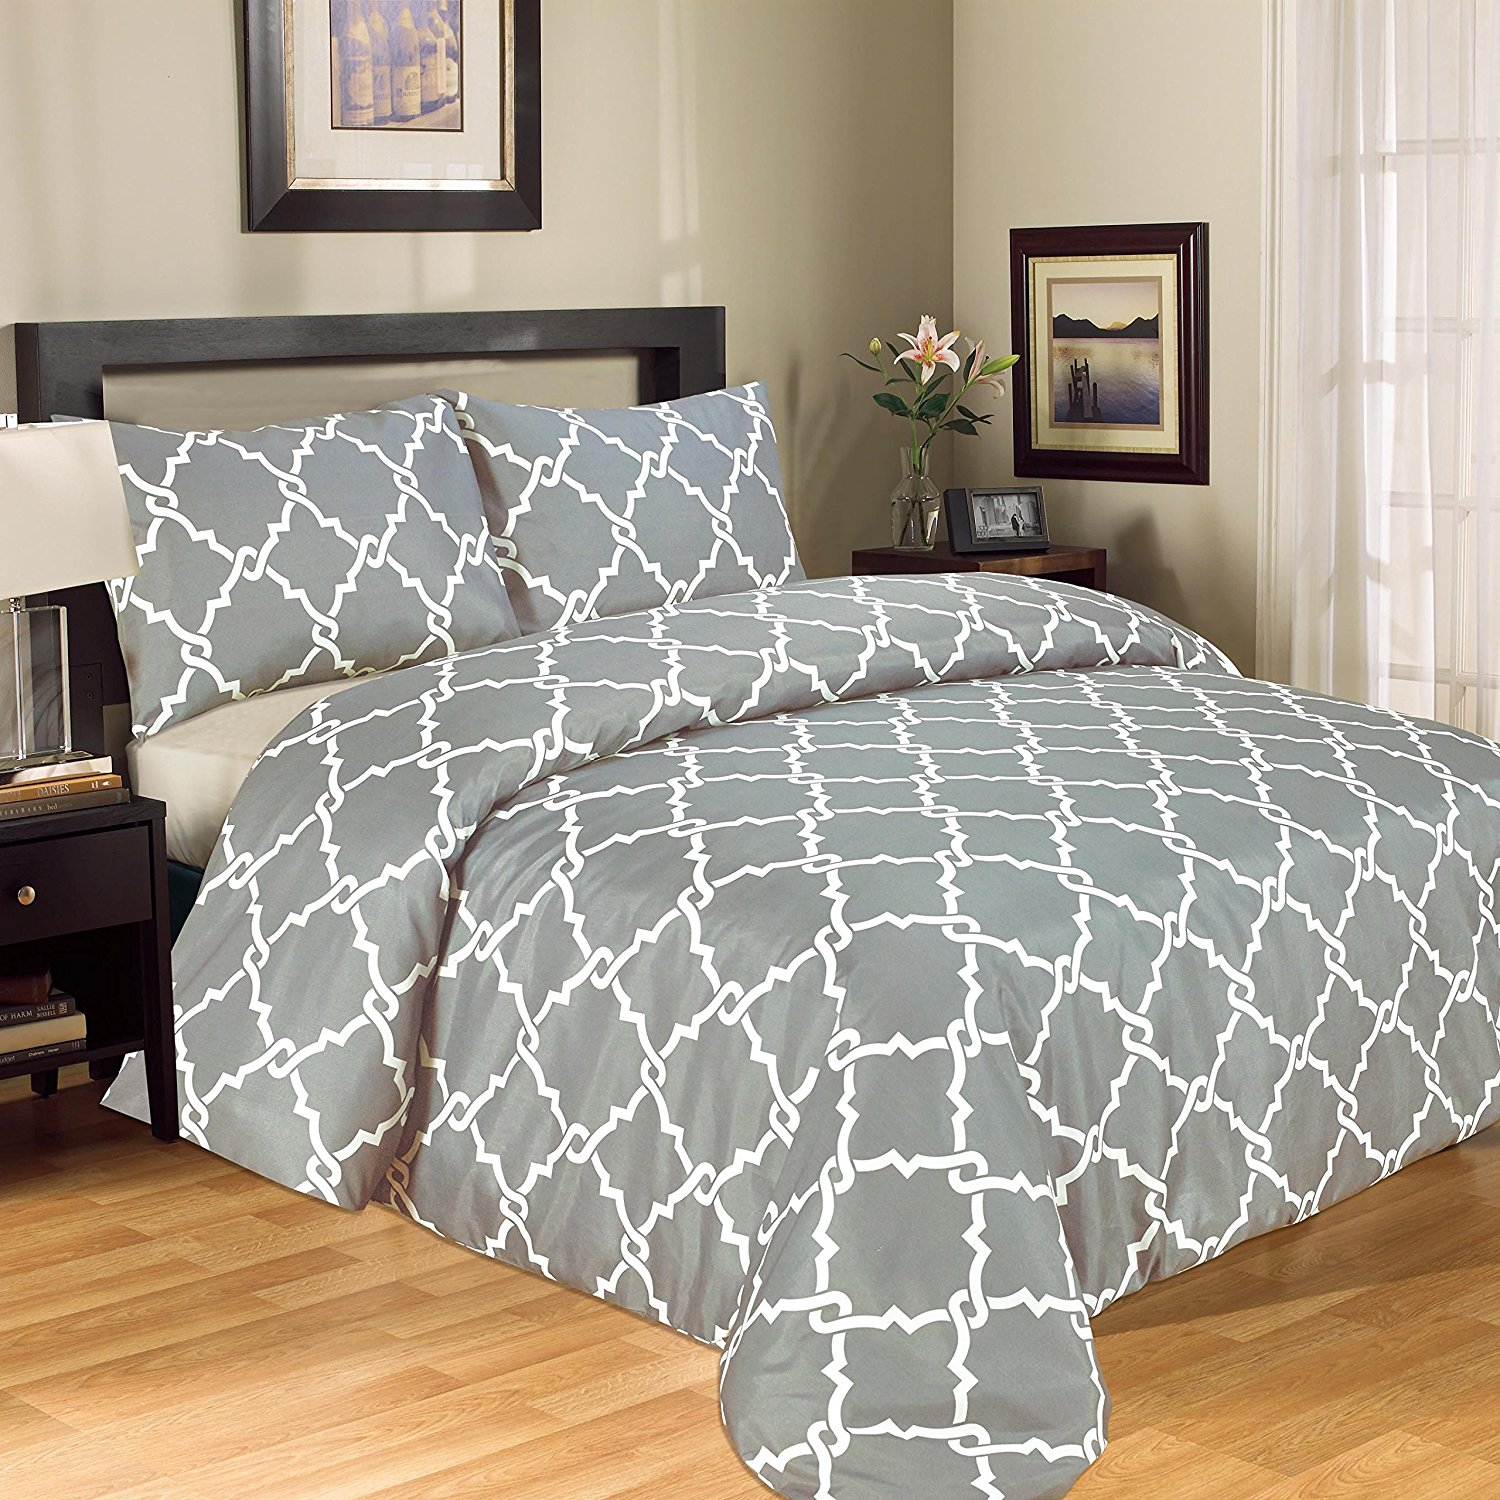 Galaxy 3-Piece Printed Luxury Modern Duvet Cover Set 100% Soft Microfiber With Pillow Cases King Size - Grey & White